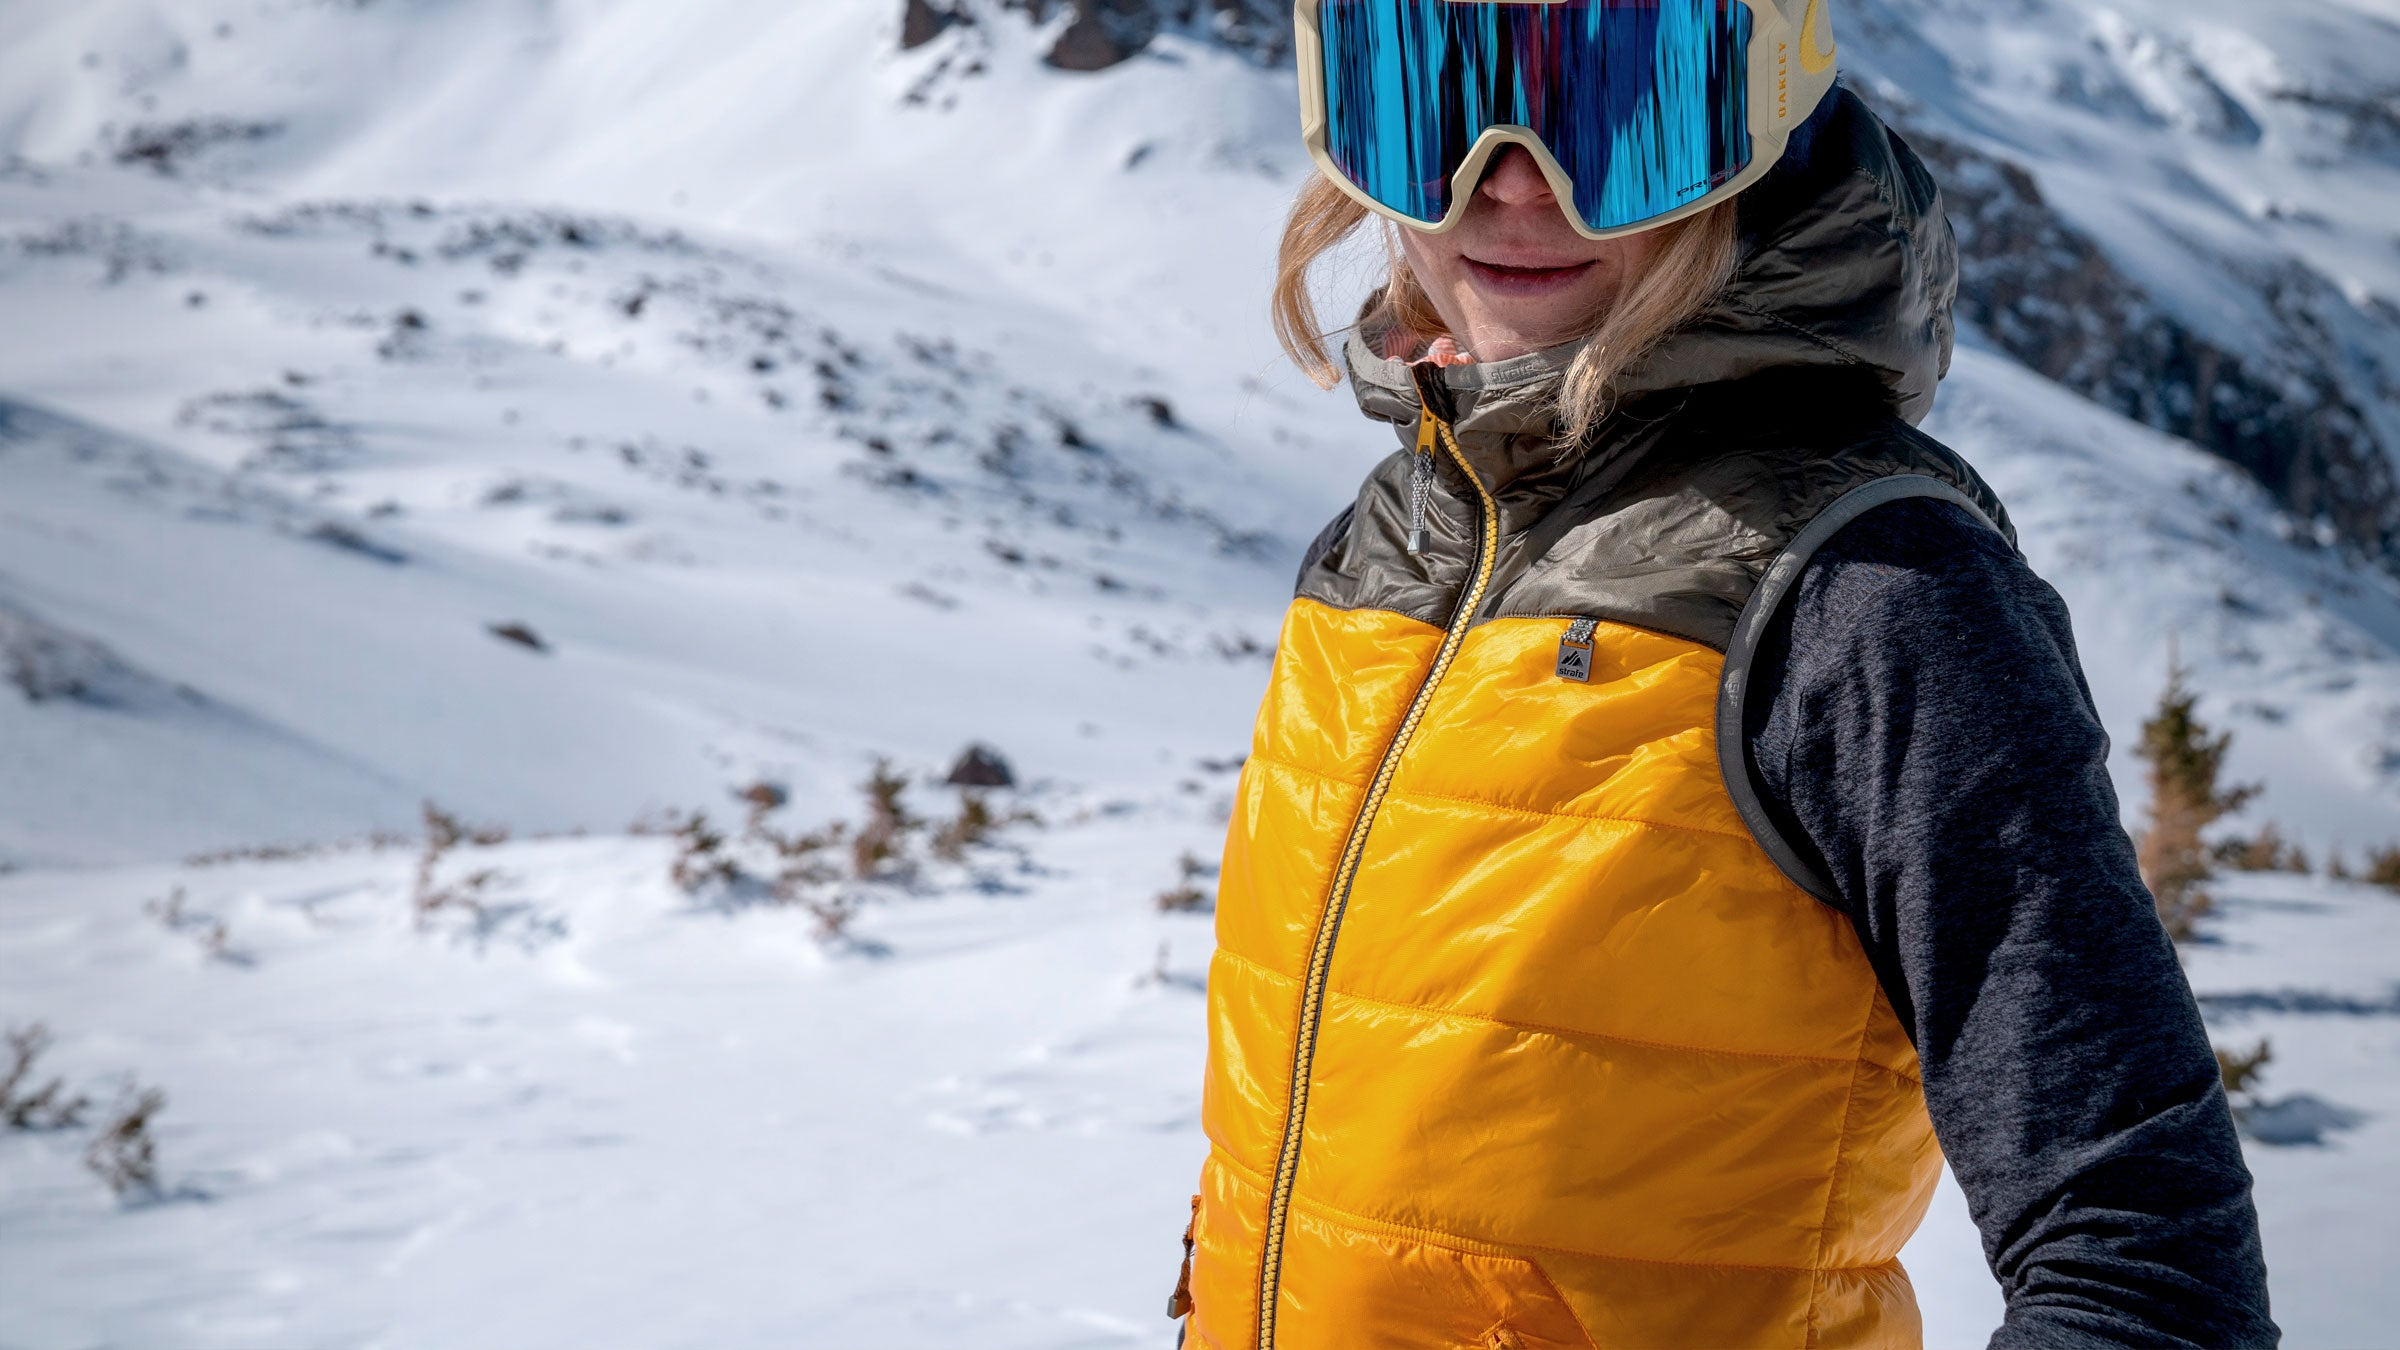 close-up of snowboarder in pique puffy vest